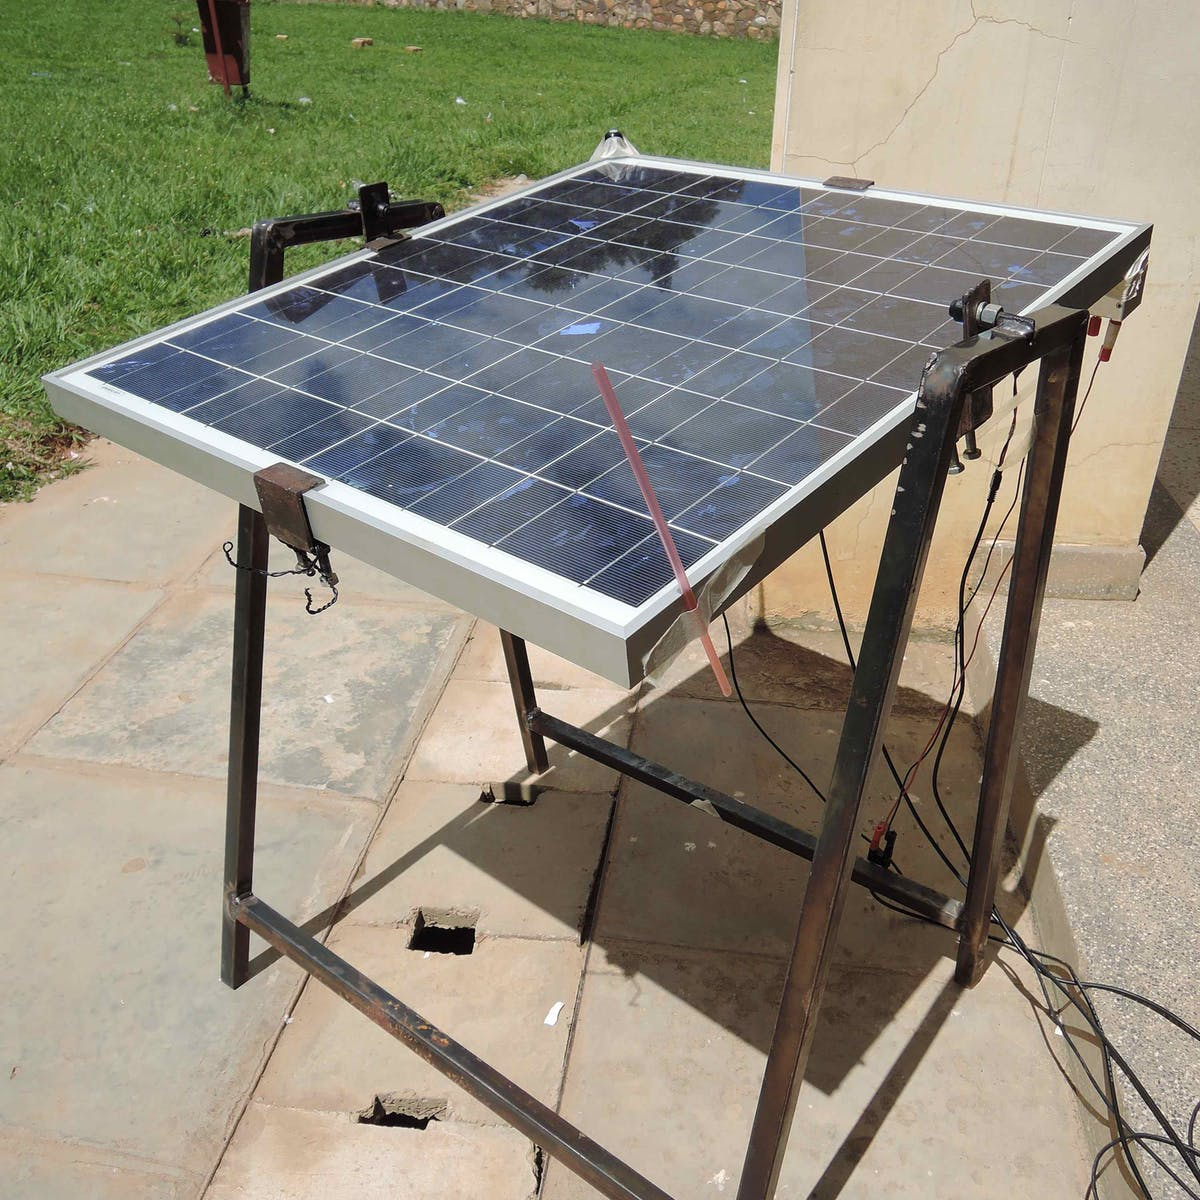 Solar Energy: Rotating Solar Panels Can Increase Efficiency by 32 Percent